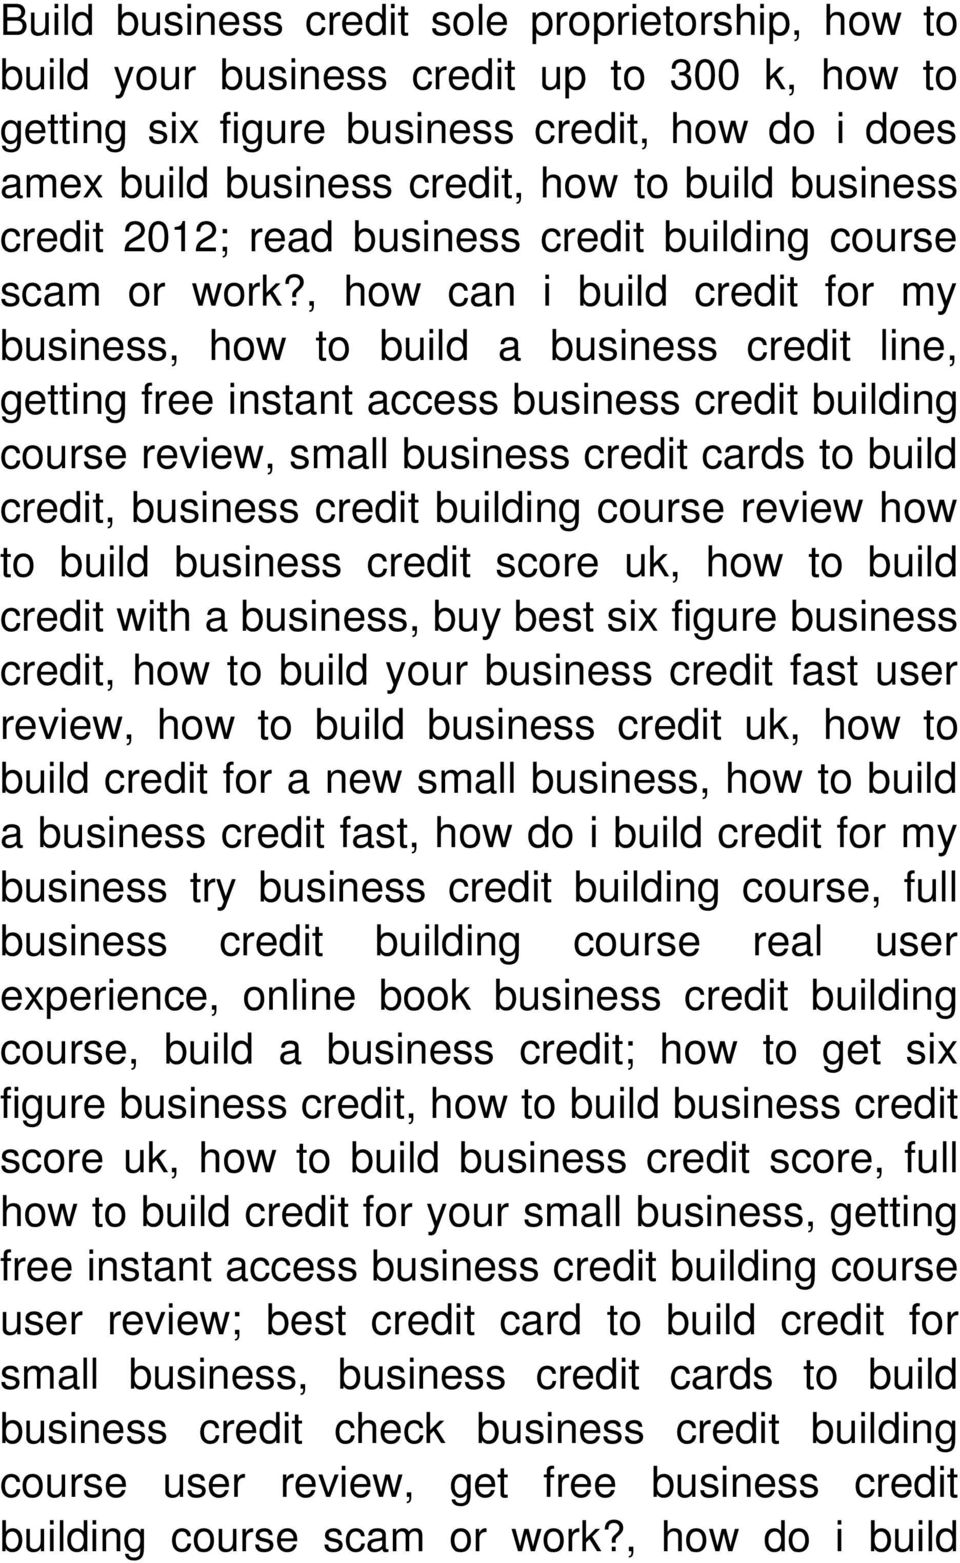 , how can i build credit for my business, how to build a business credit line, getting free instant access business credit building course review, small business credit cards to build credit,